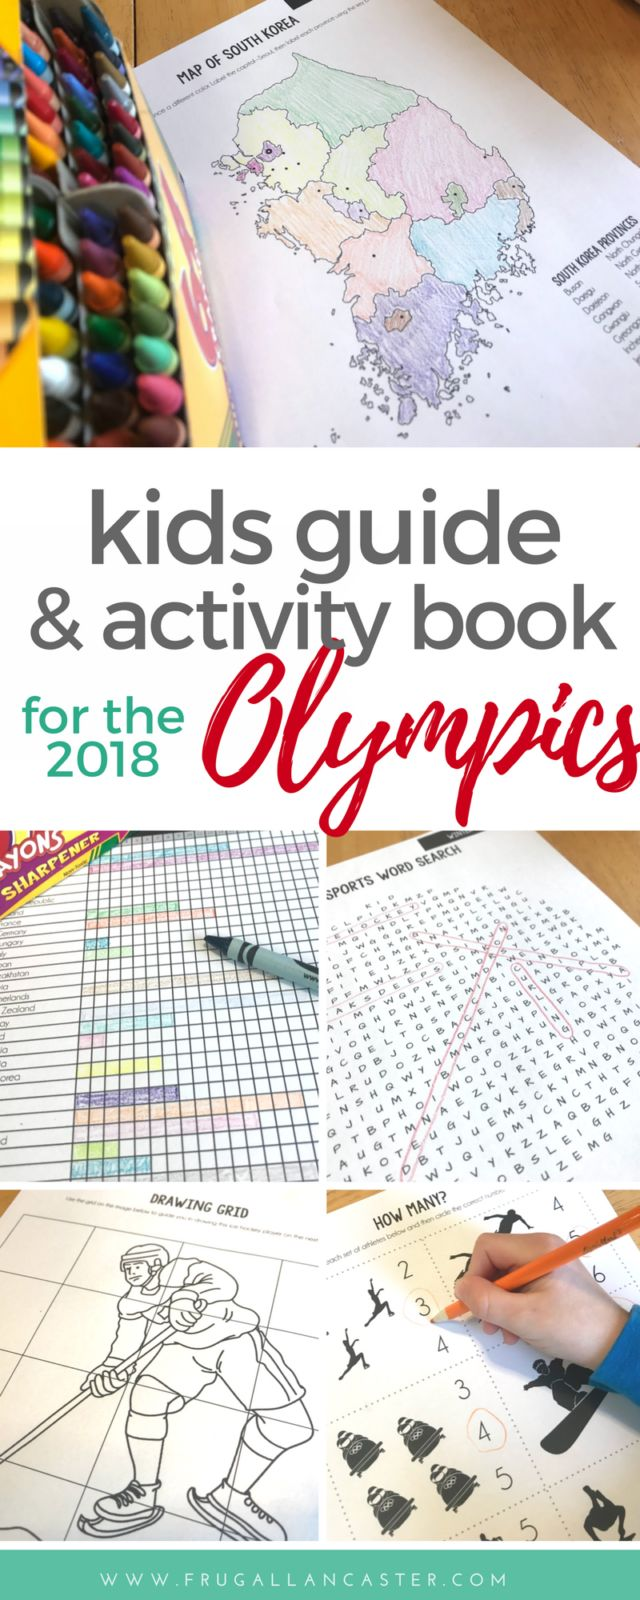 2018 Winter Olympics: A Complete Kids Guide and Activity Book for PyeongChang Winter Olympics - graph the winning medals, create athlete bio sheets, draw your own mascot, design a medal, and play winter games activities like word searches, cross words and math problems!